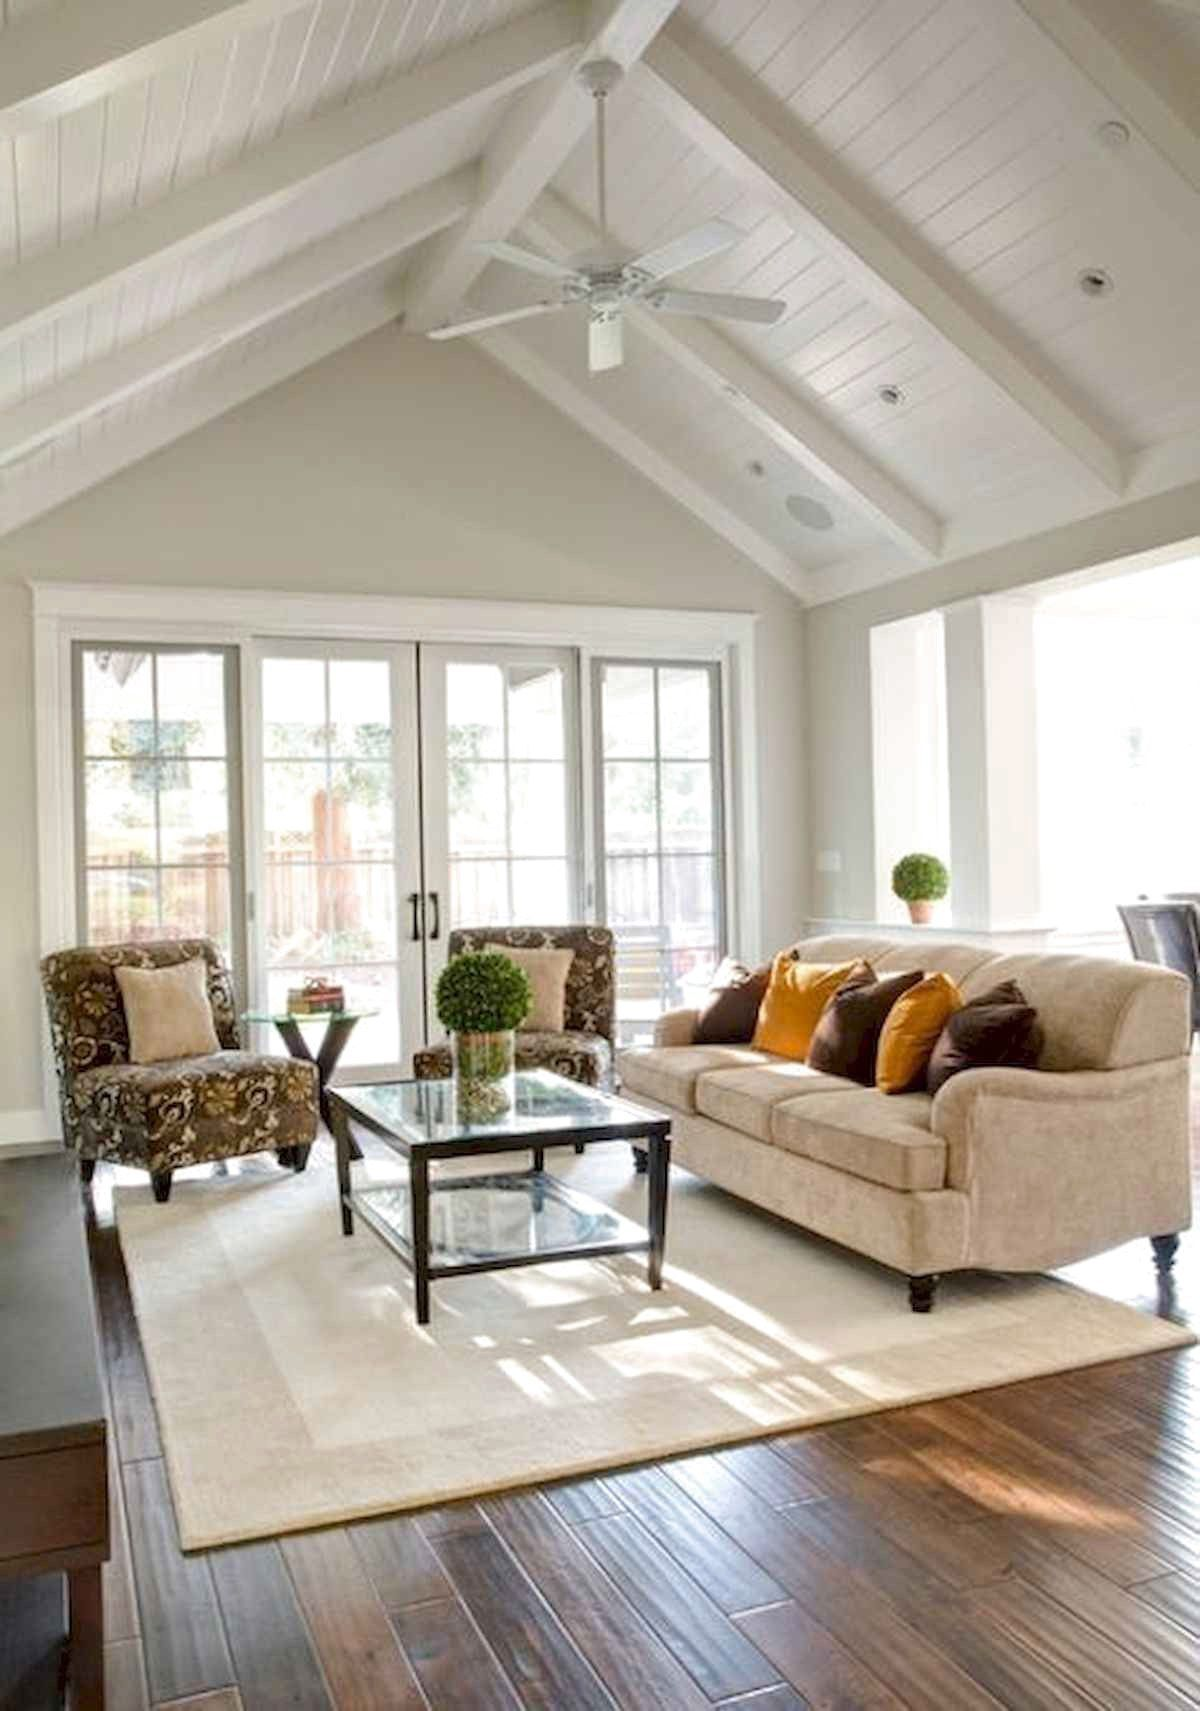 Favorite Furniture For Modern Farmhouse Living Room Decor Ideas Frugal Living Cathedral Ceiling Living Room Modern Farmhouse Living Room Farm House Living Room